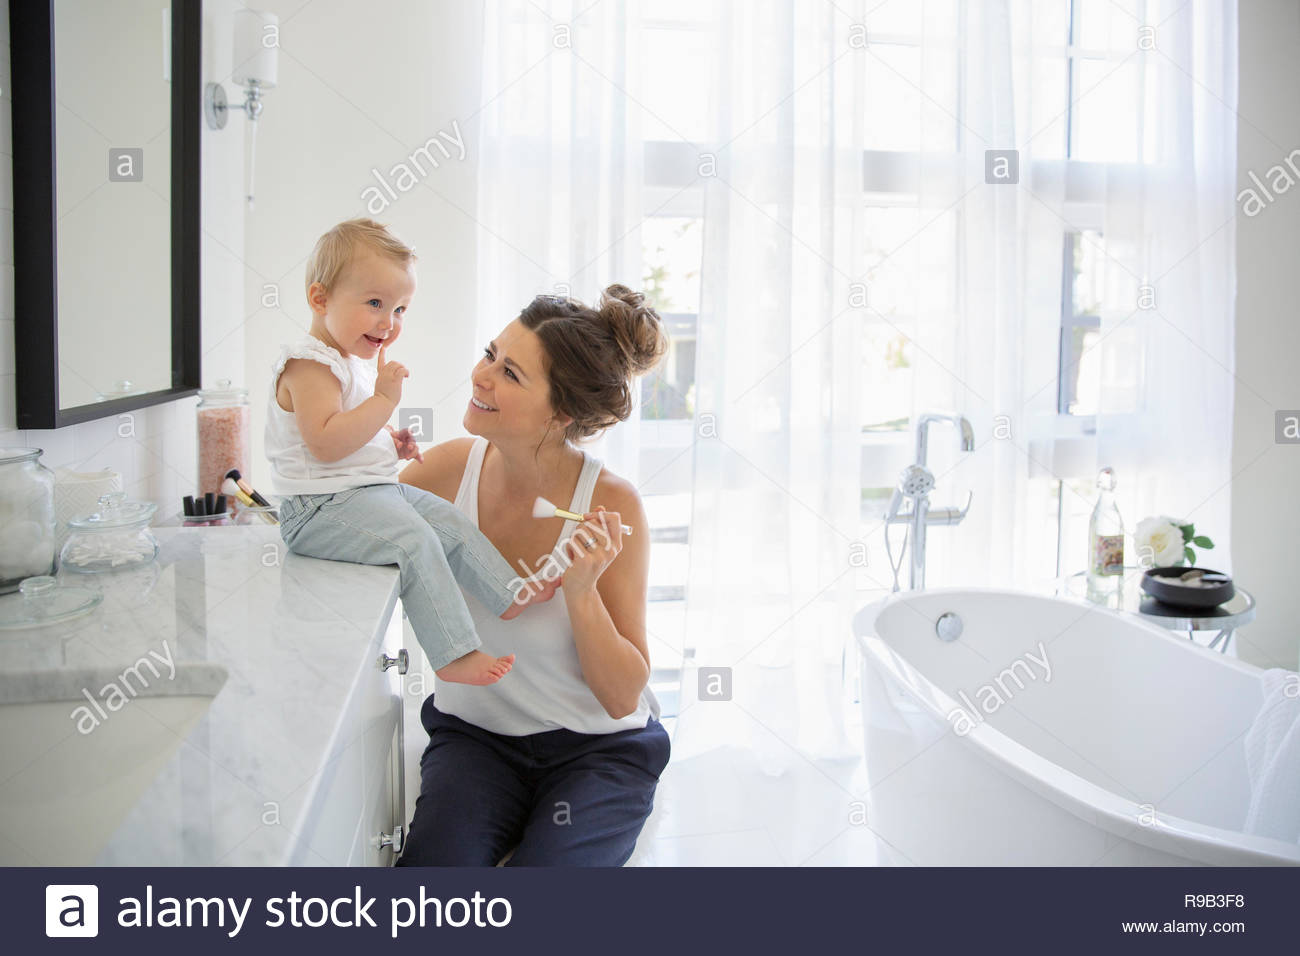 Mother and baby daughter in bathroom - Stock Image